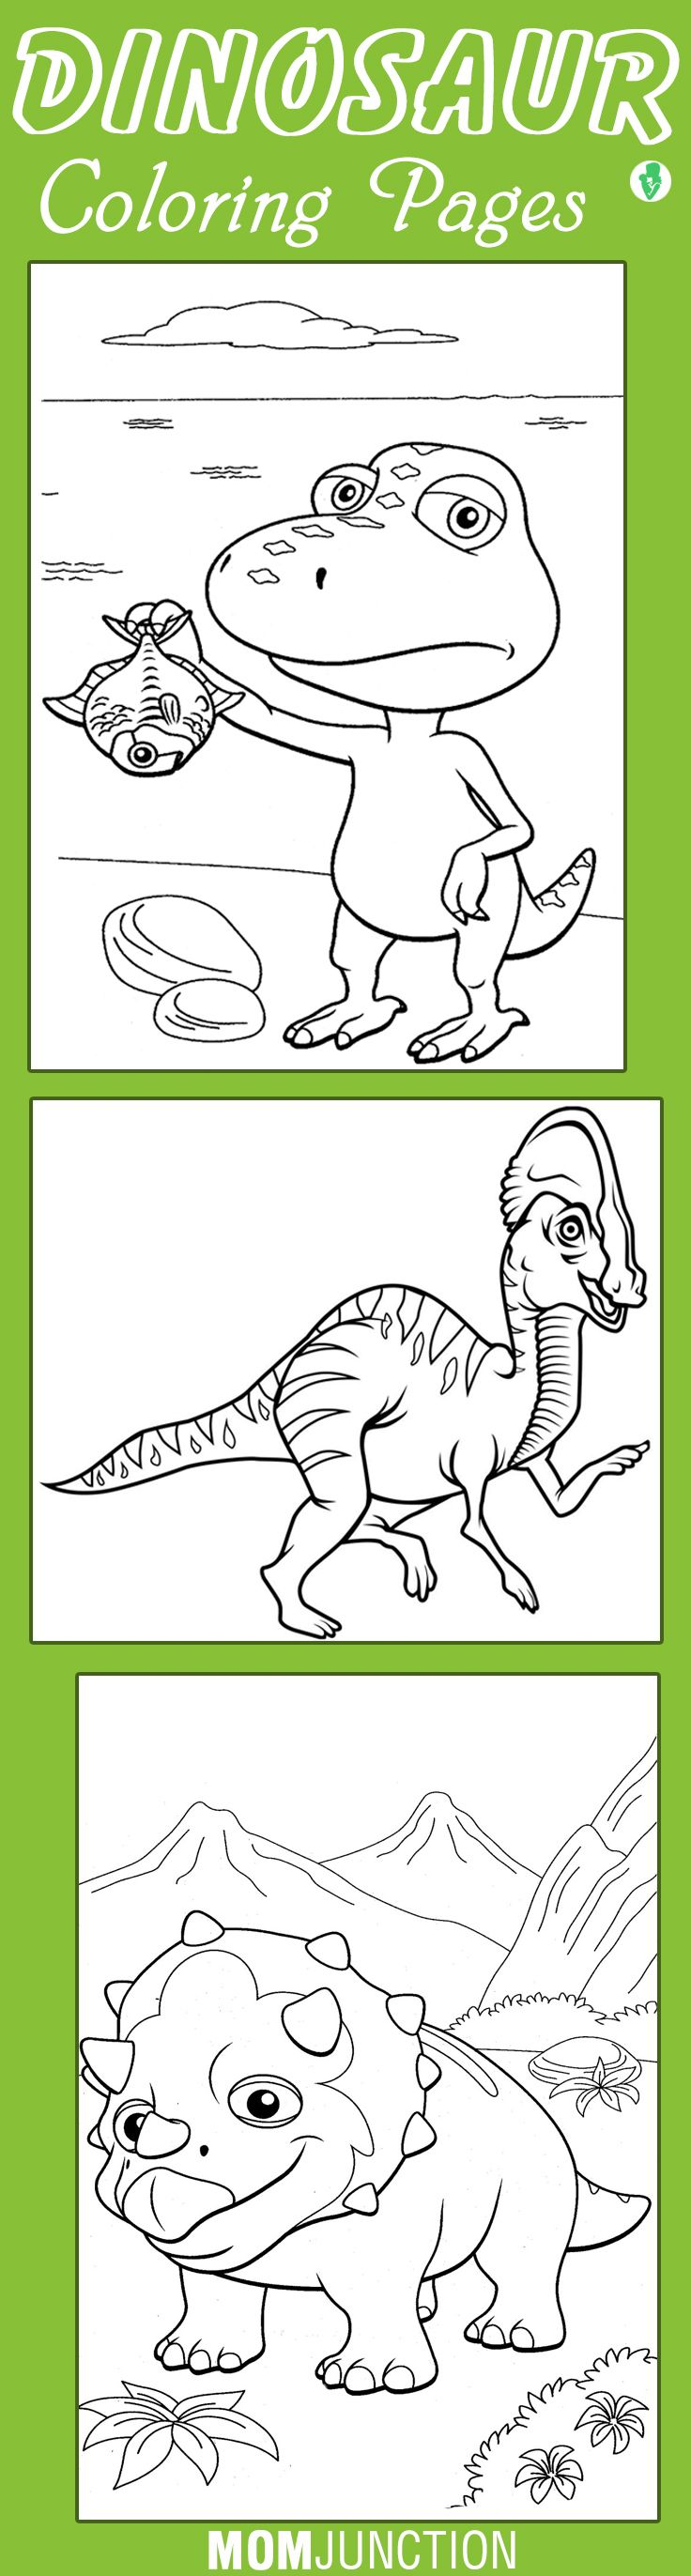 Train boxcar coloring pages - 10 Cute Dinosaur Train Coloring Pages Your Toddler Will Love To Color